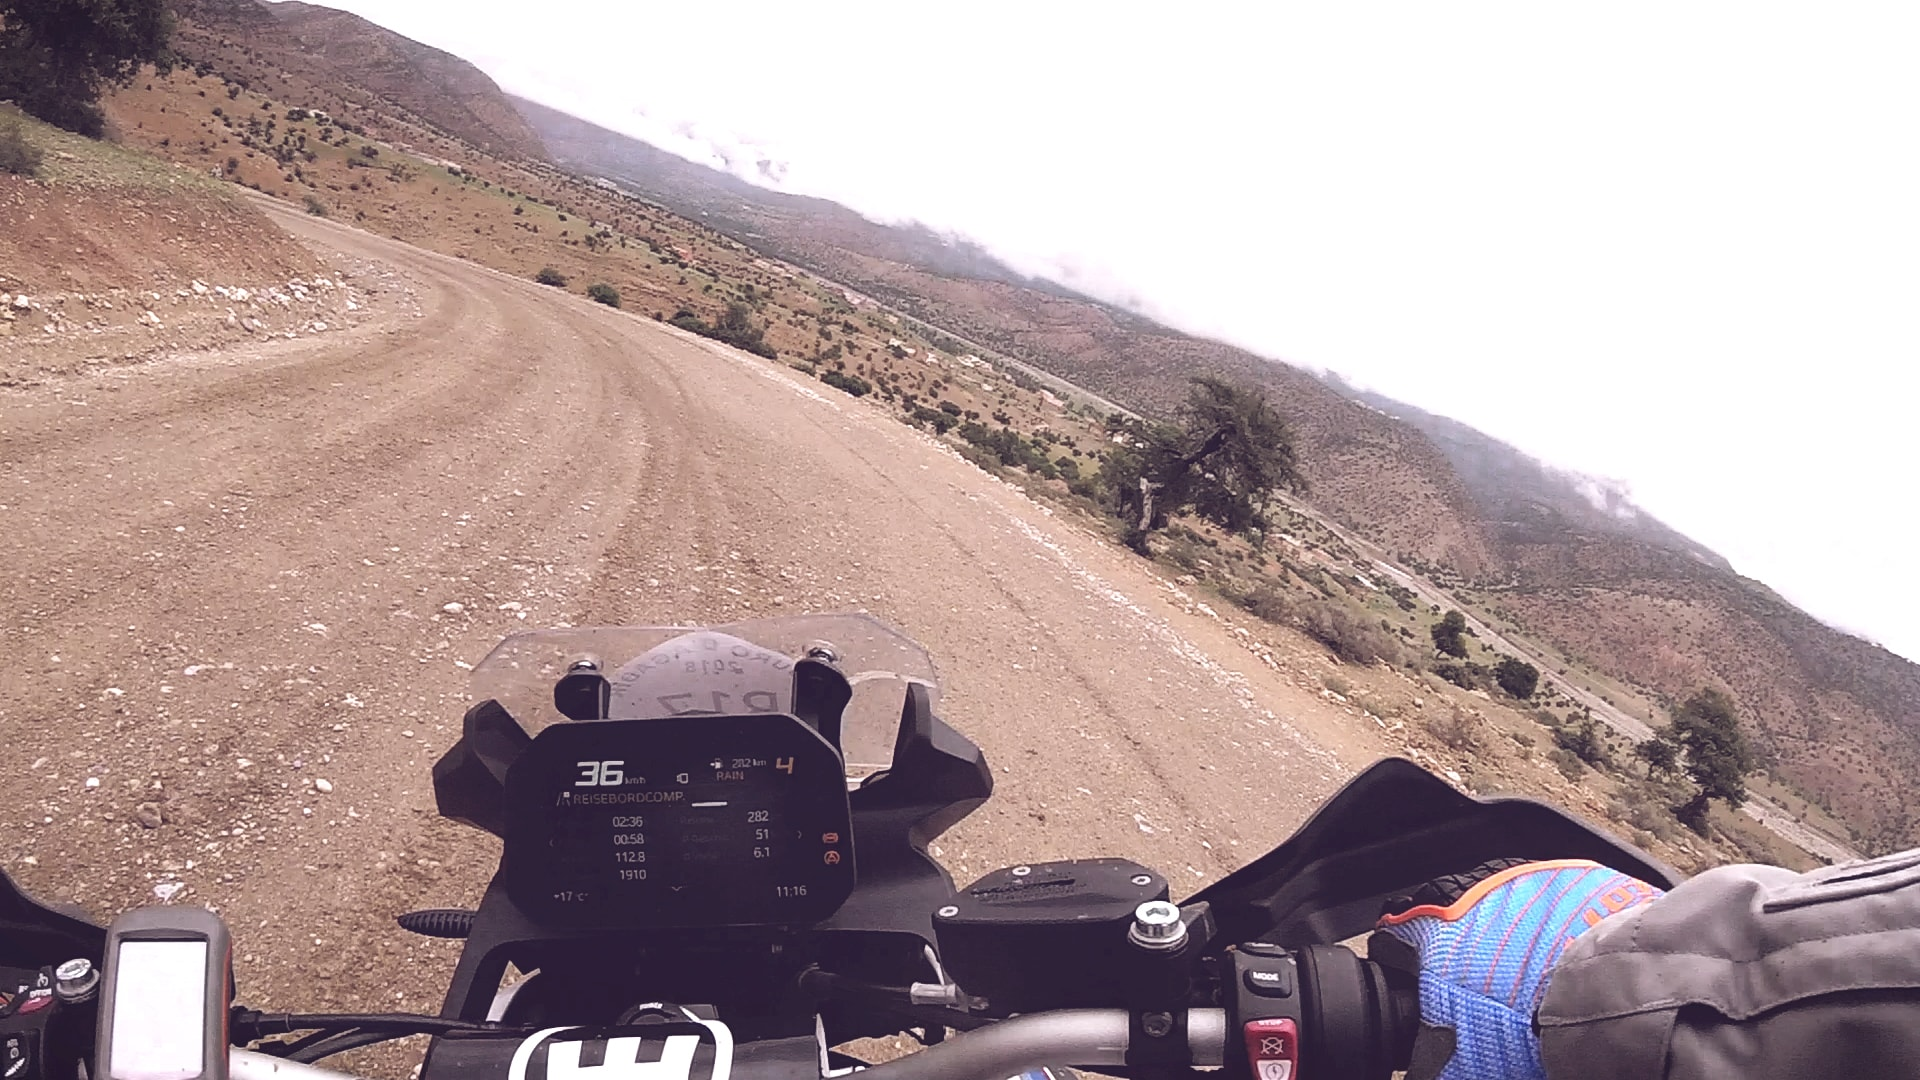 Riding through bendy roads